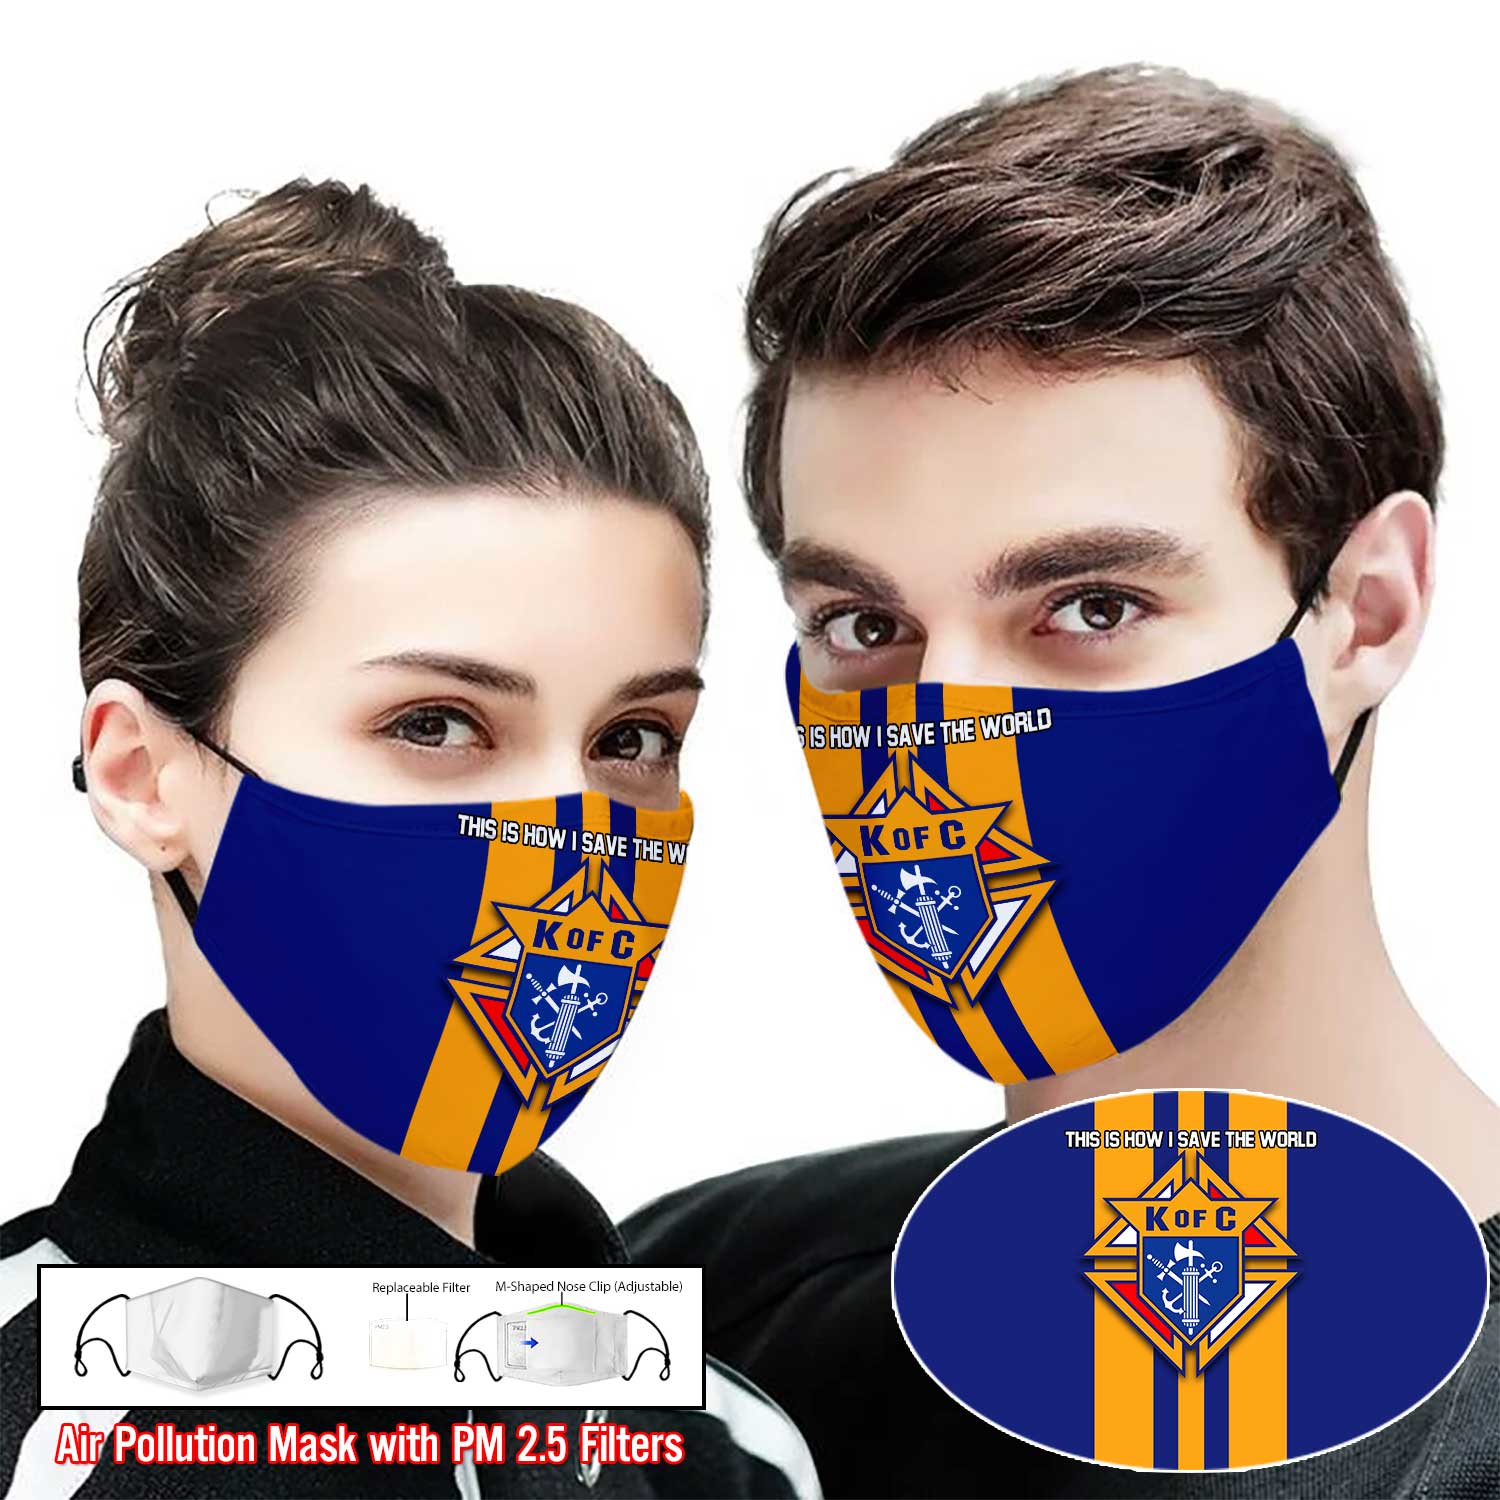 Knights of Columbus Catholic this is how i save the world face mask 1